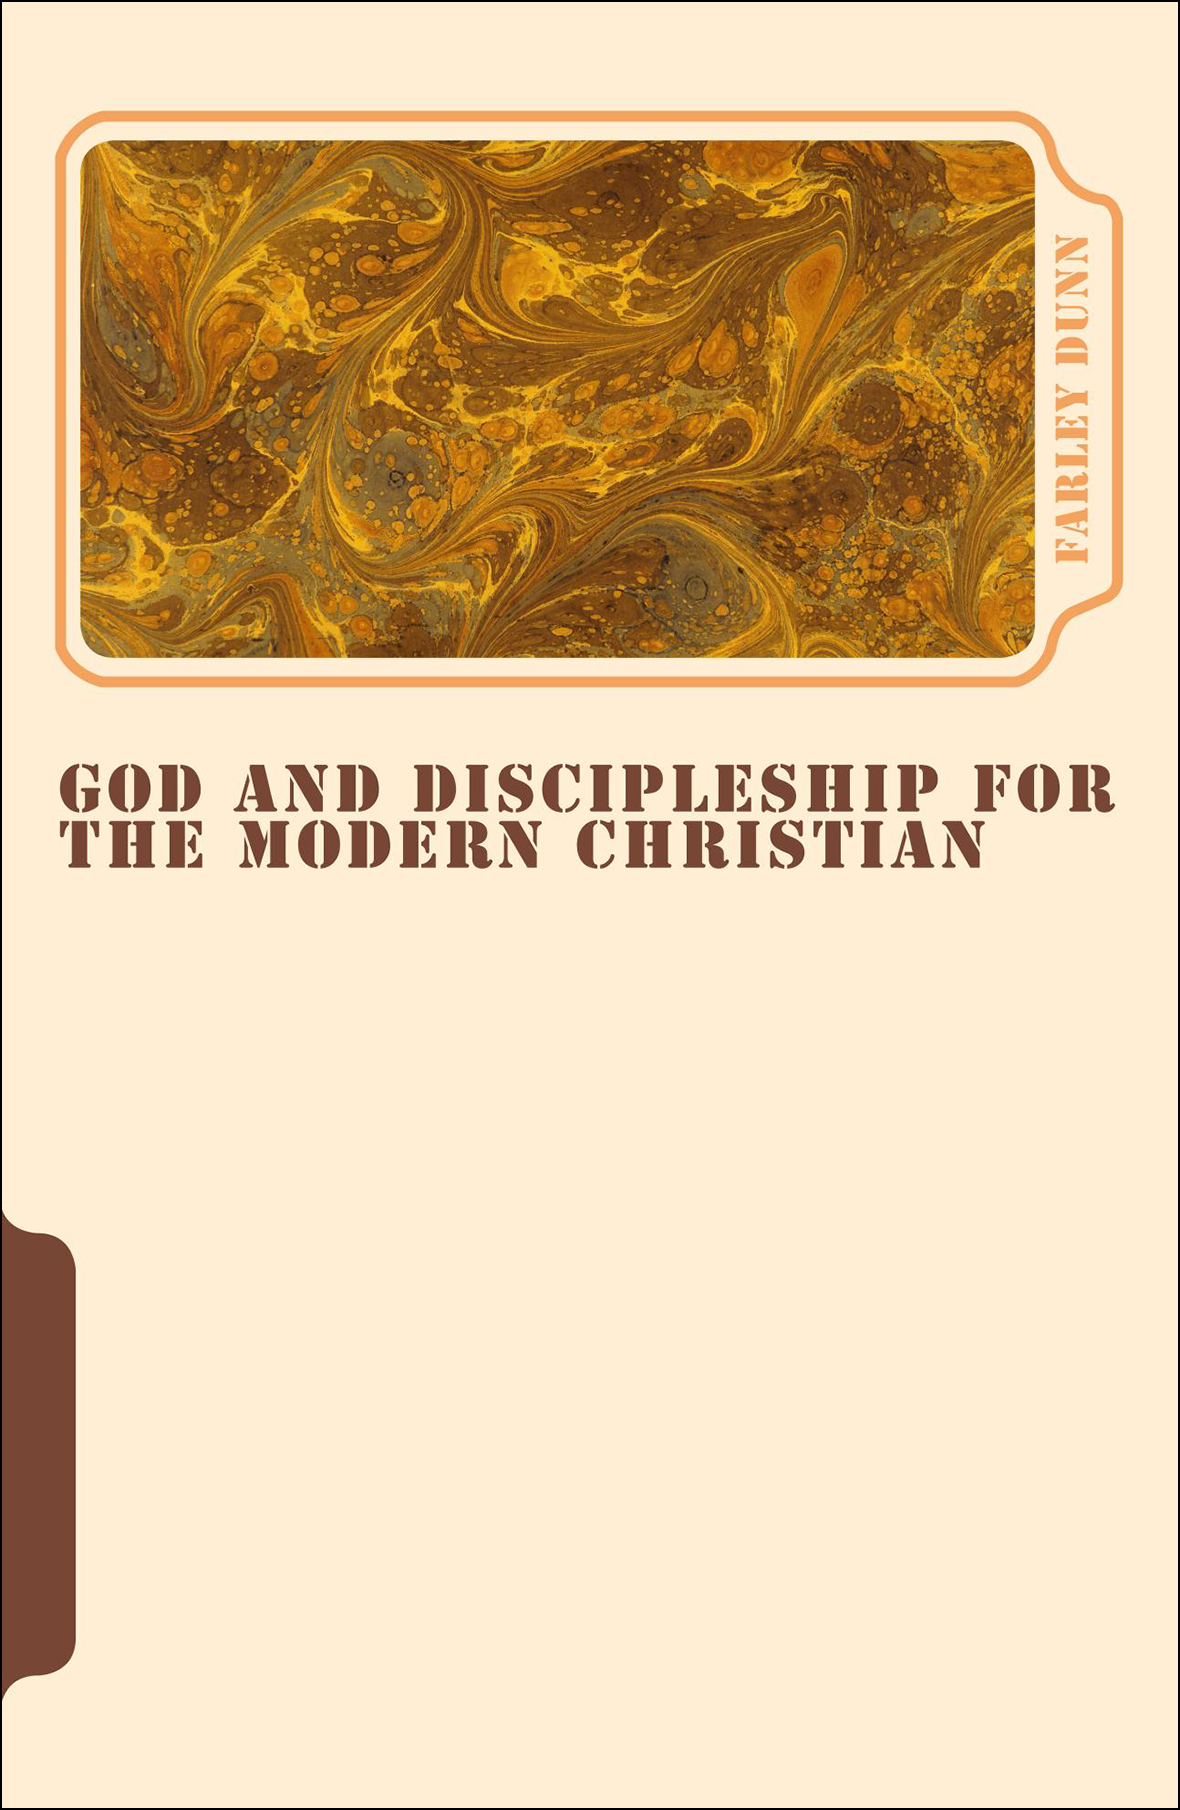 God and Discipleship Cover for web insertion Vol 5